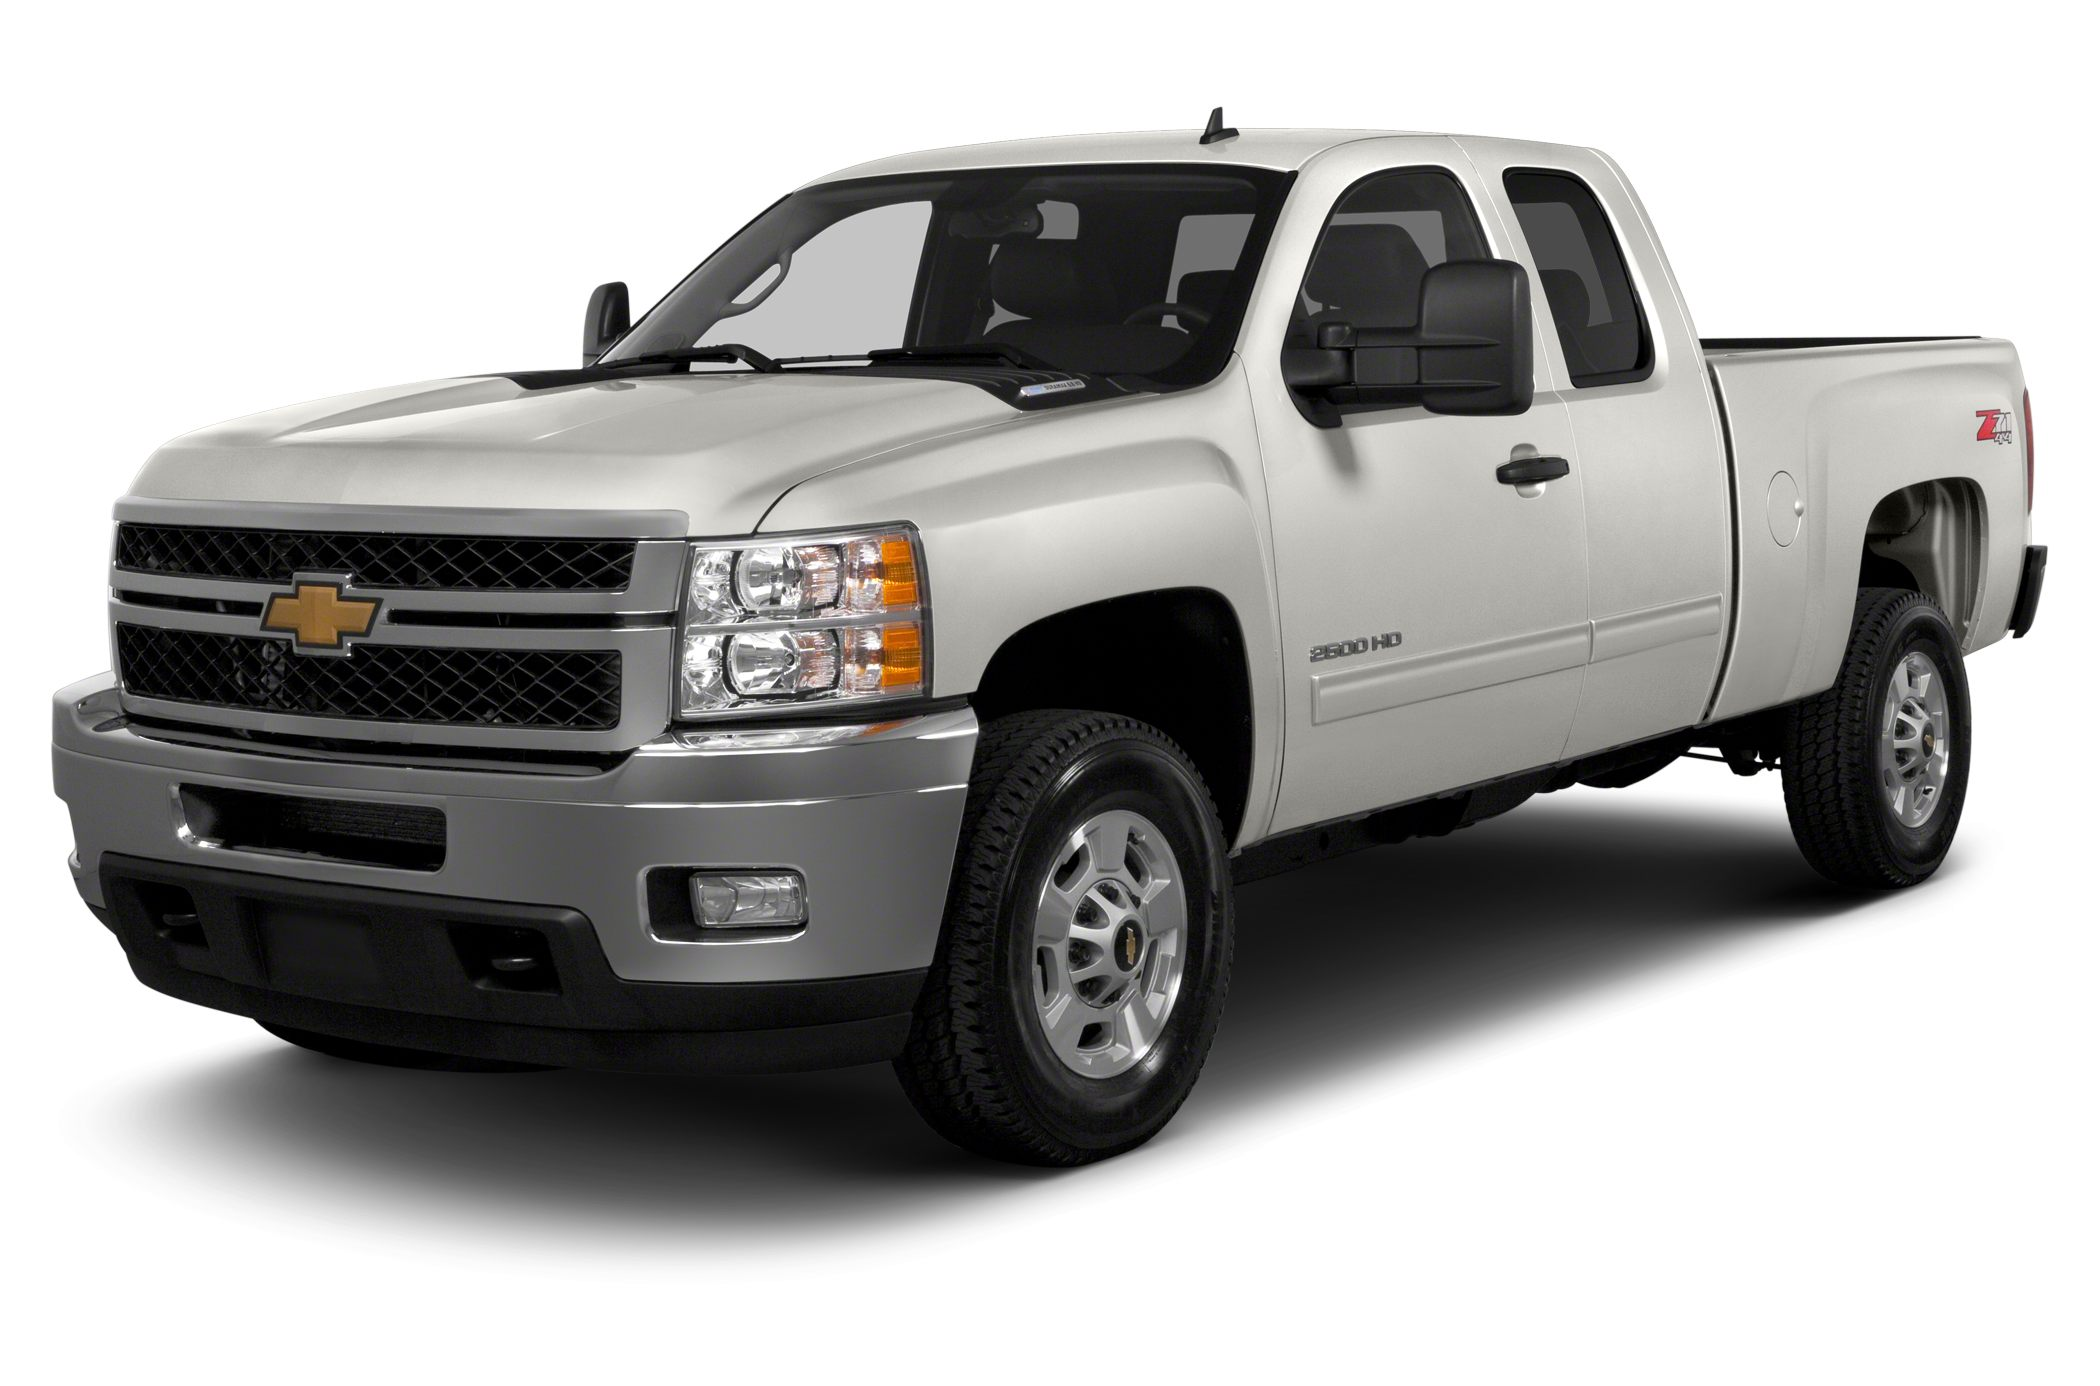 2013 Chevrolet Silverado 2500 LTZ Crew Cab Pickup for sale in Ottumwa for $48,000 with 16,420 miles.